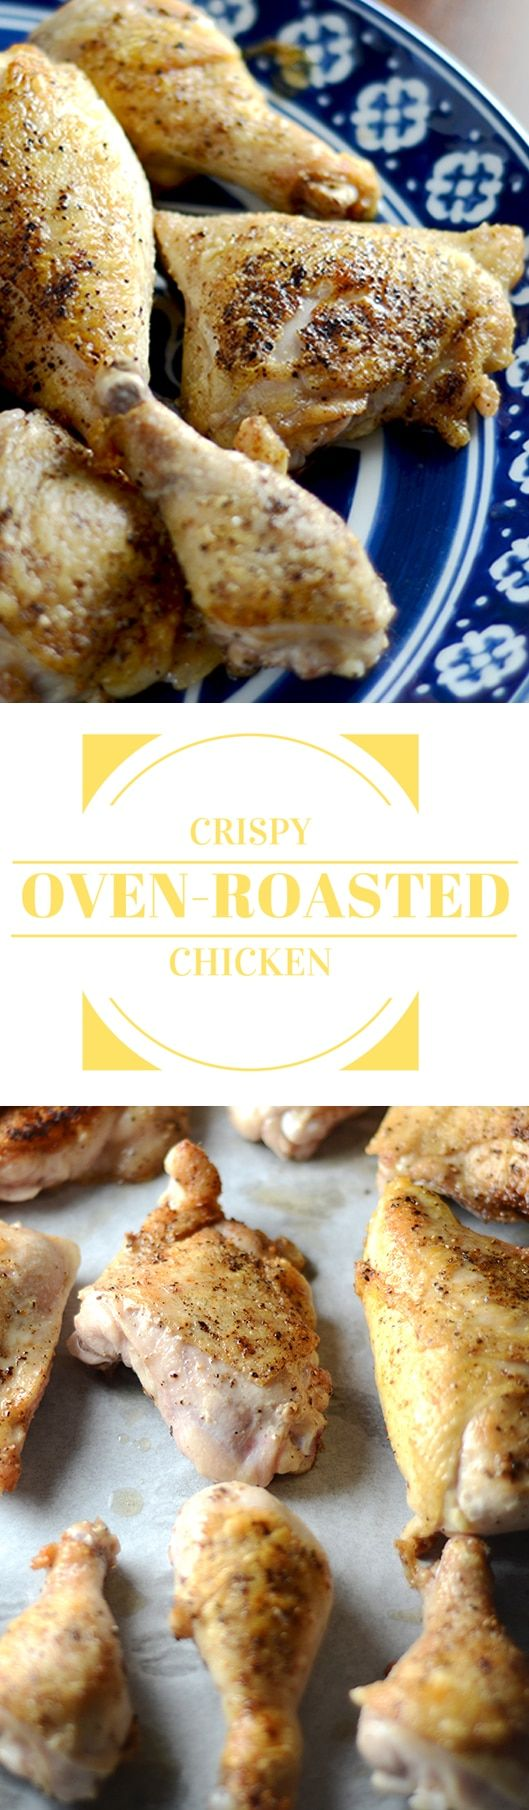 Chicken guaranteed to be tender & juicy. This crispy oven roasted chicken recipe is gluten free, paleo, primal & wheat belly friendly. Get the recipe here!